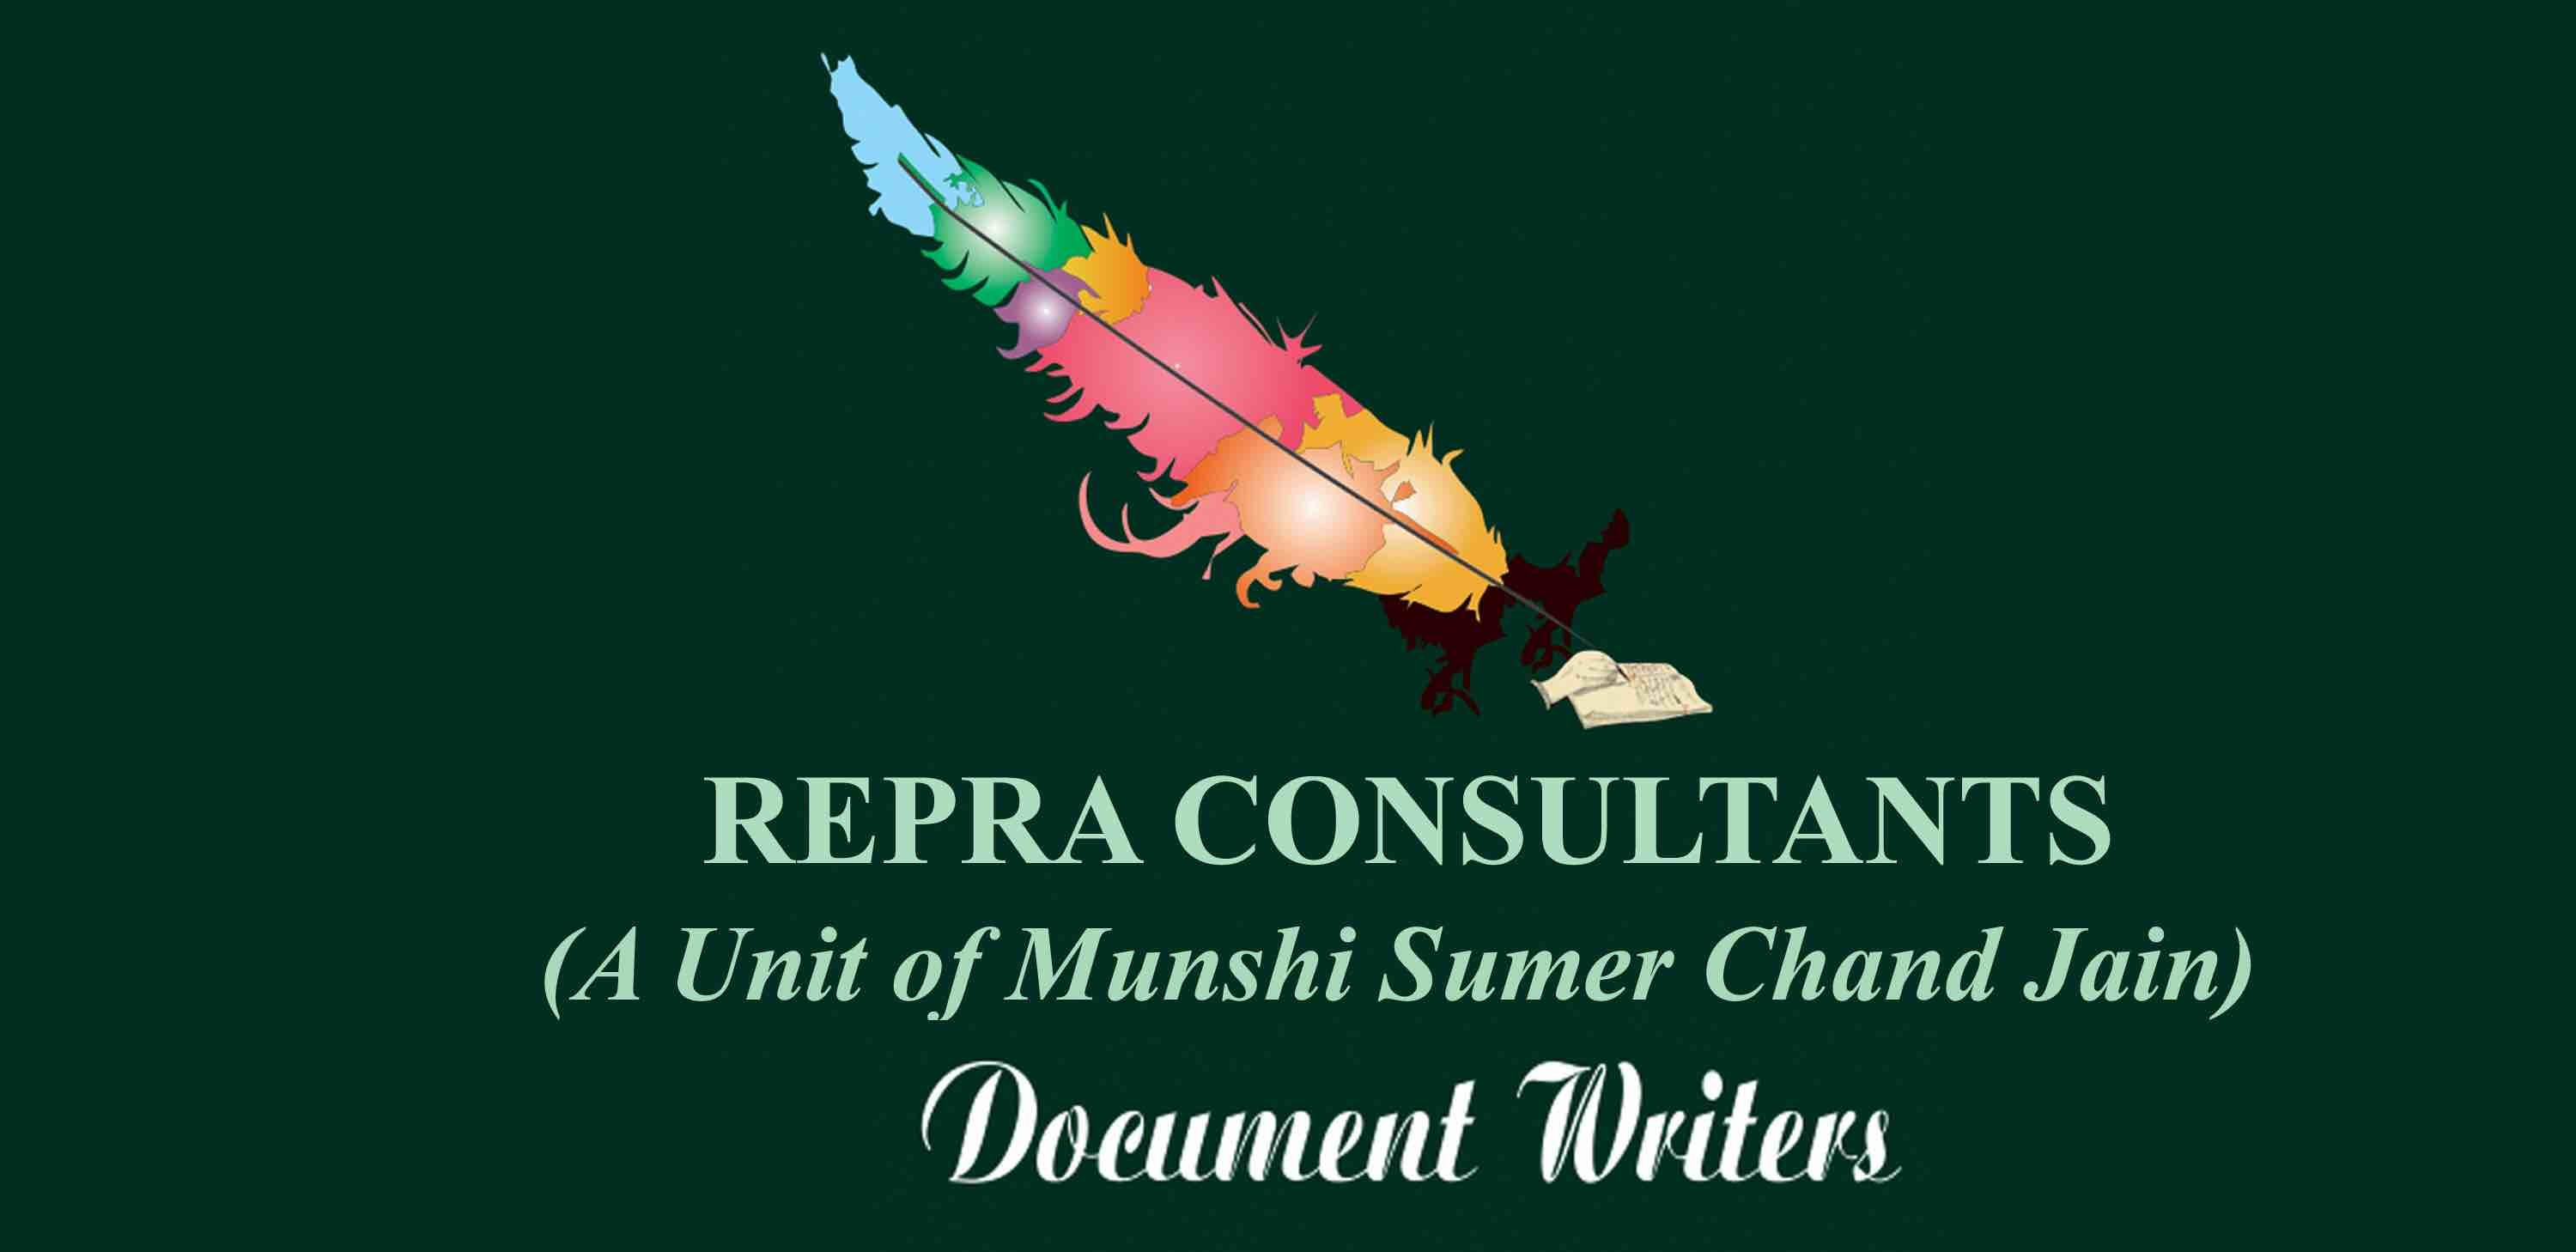 REPRA CONSULTANTS (a Unit of Munshi Sumer Chand Jain)